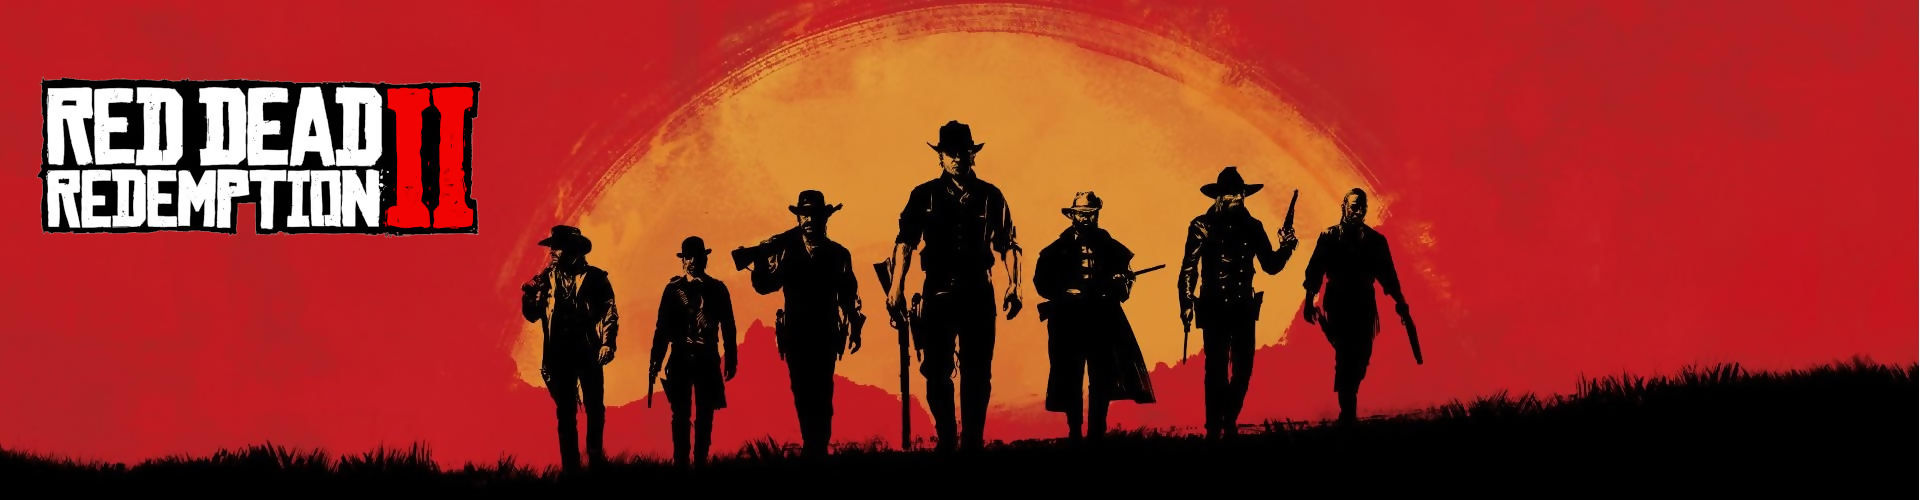 Check out all the European scores of Red Dead Redemption 2